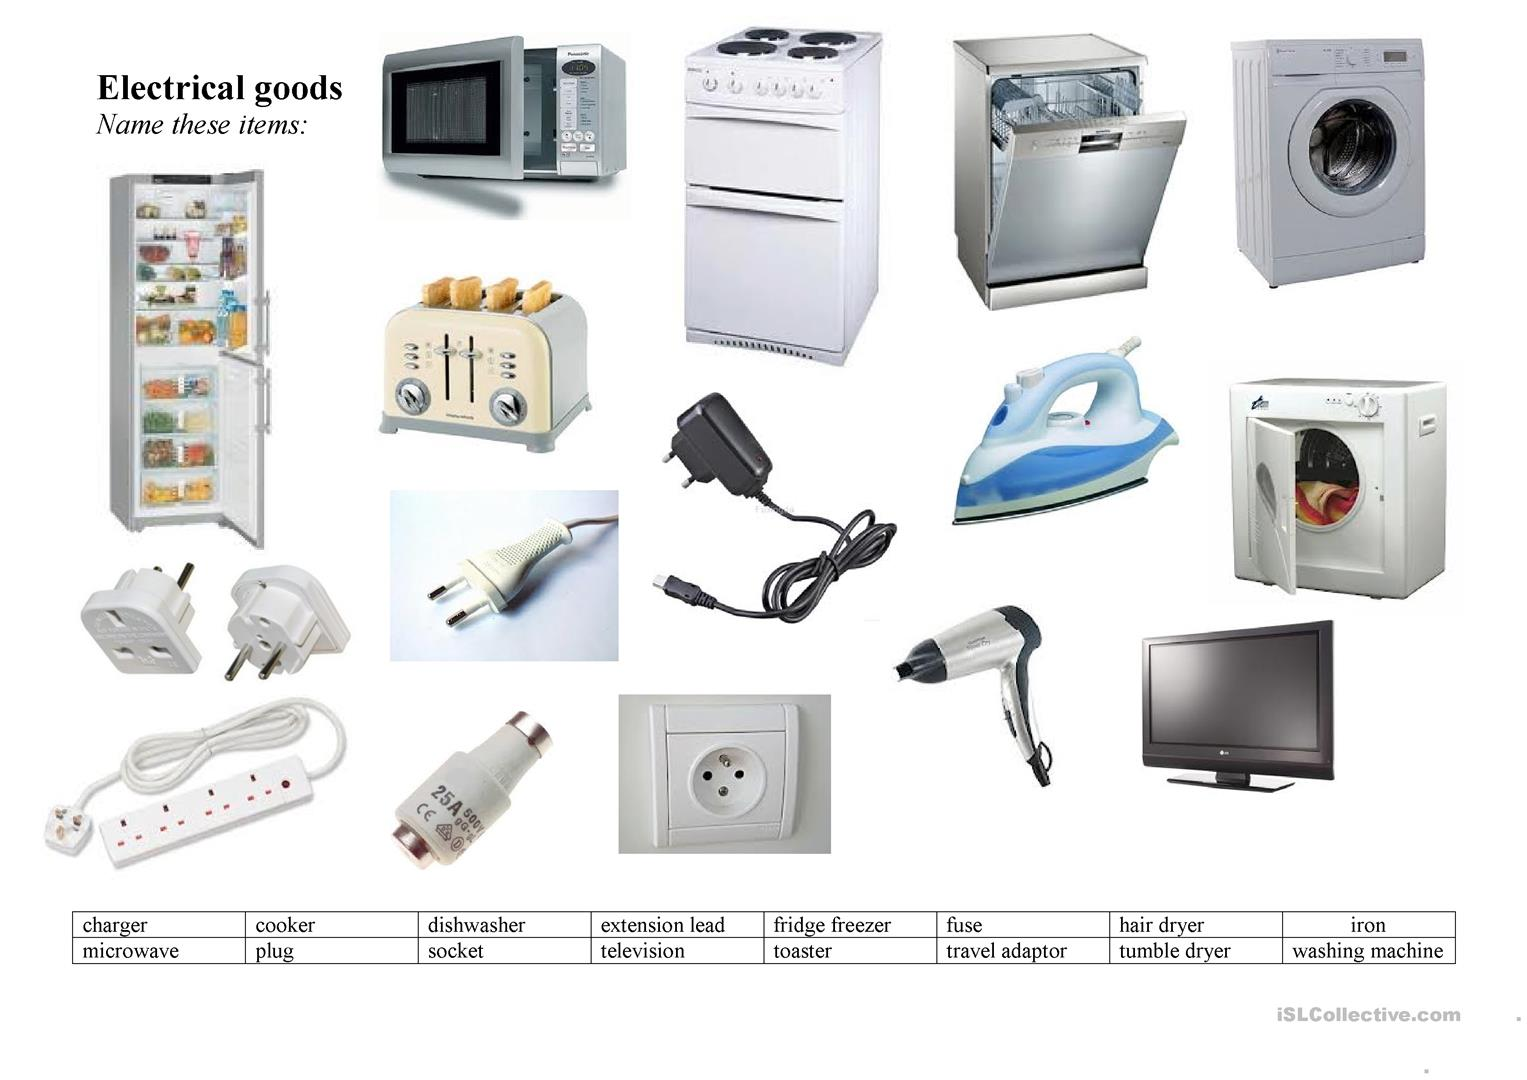 Electricity and electrical devices worksheet - Free ESL printable ...